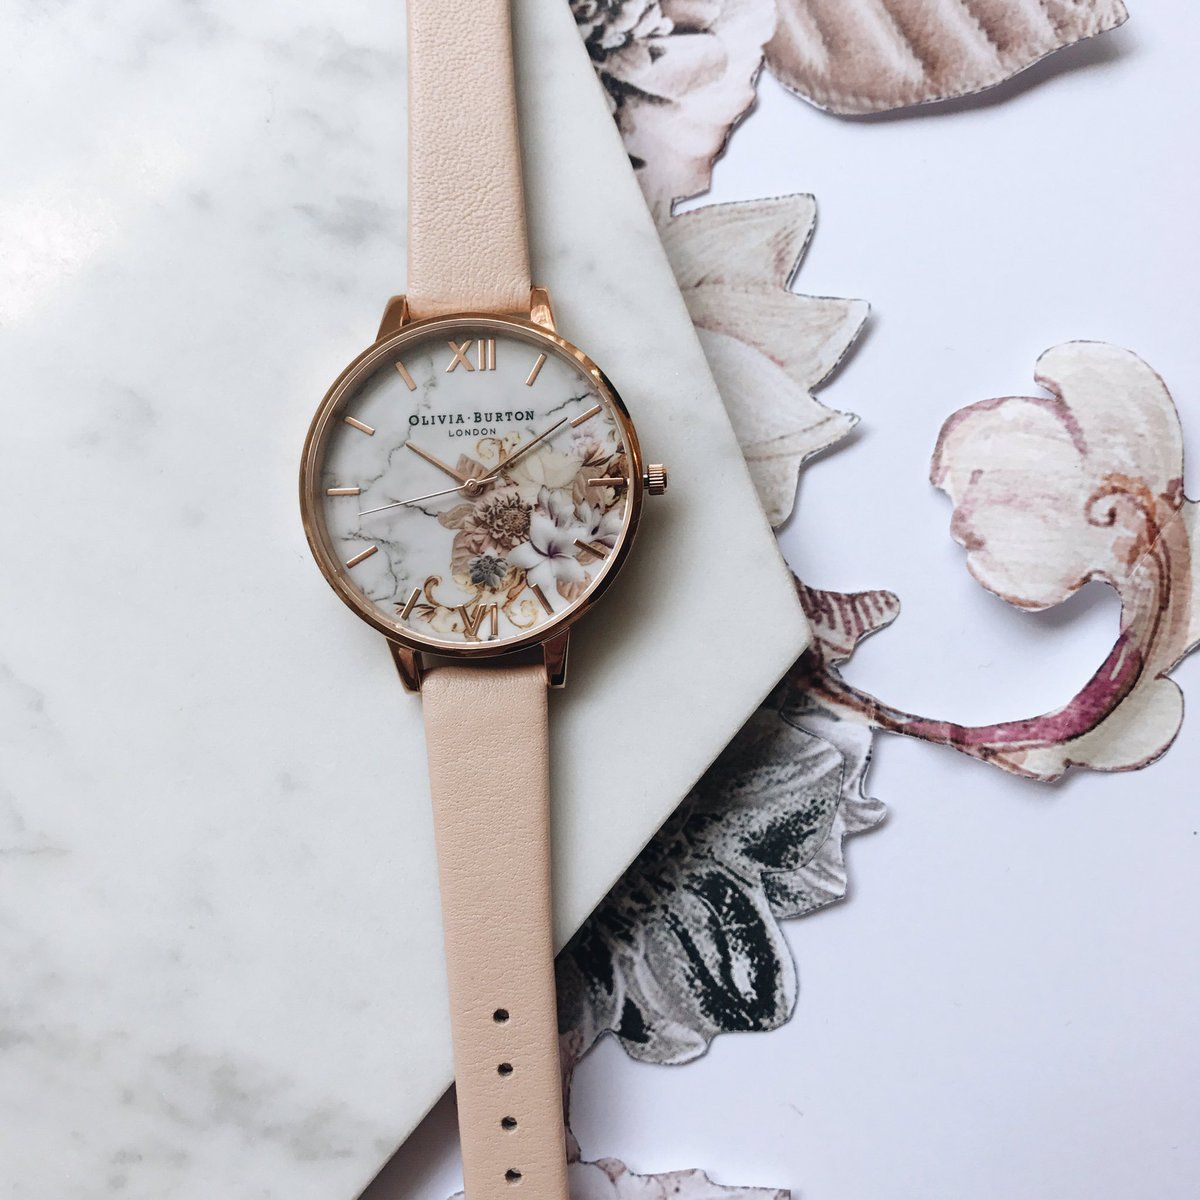 03e7c3c92 Olivia Burton Marble Floral Nude Peach & Rose Gold Watch #oliviaburton #new  #collection #watch #jewellery #jewelry #marble #florals #gift